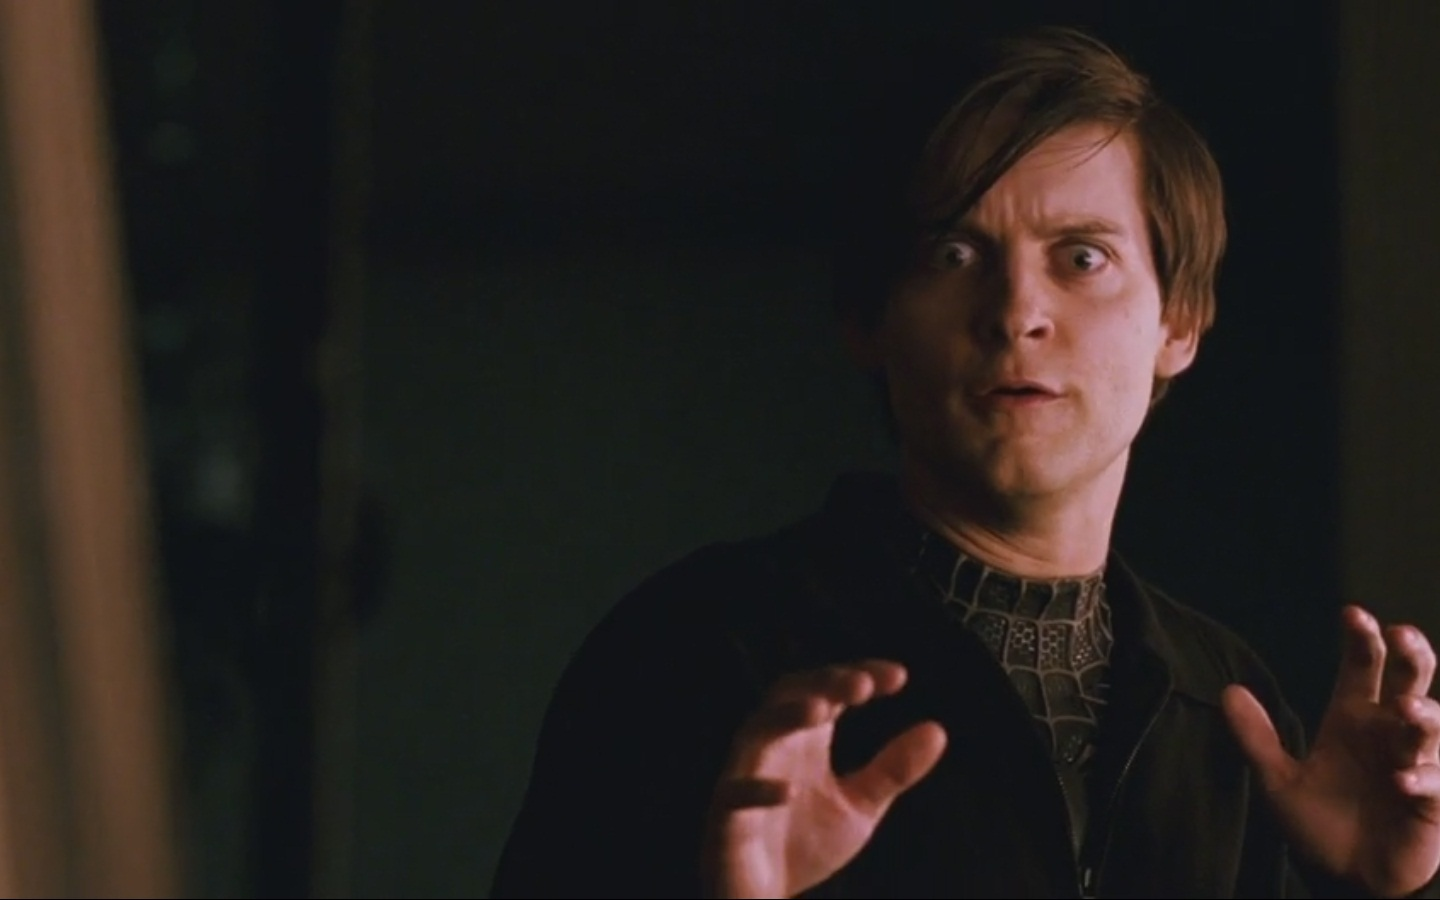 Tobey maguire black spiderman - photo#18